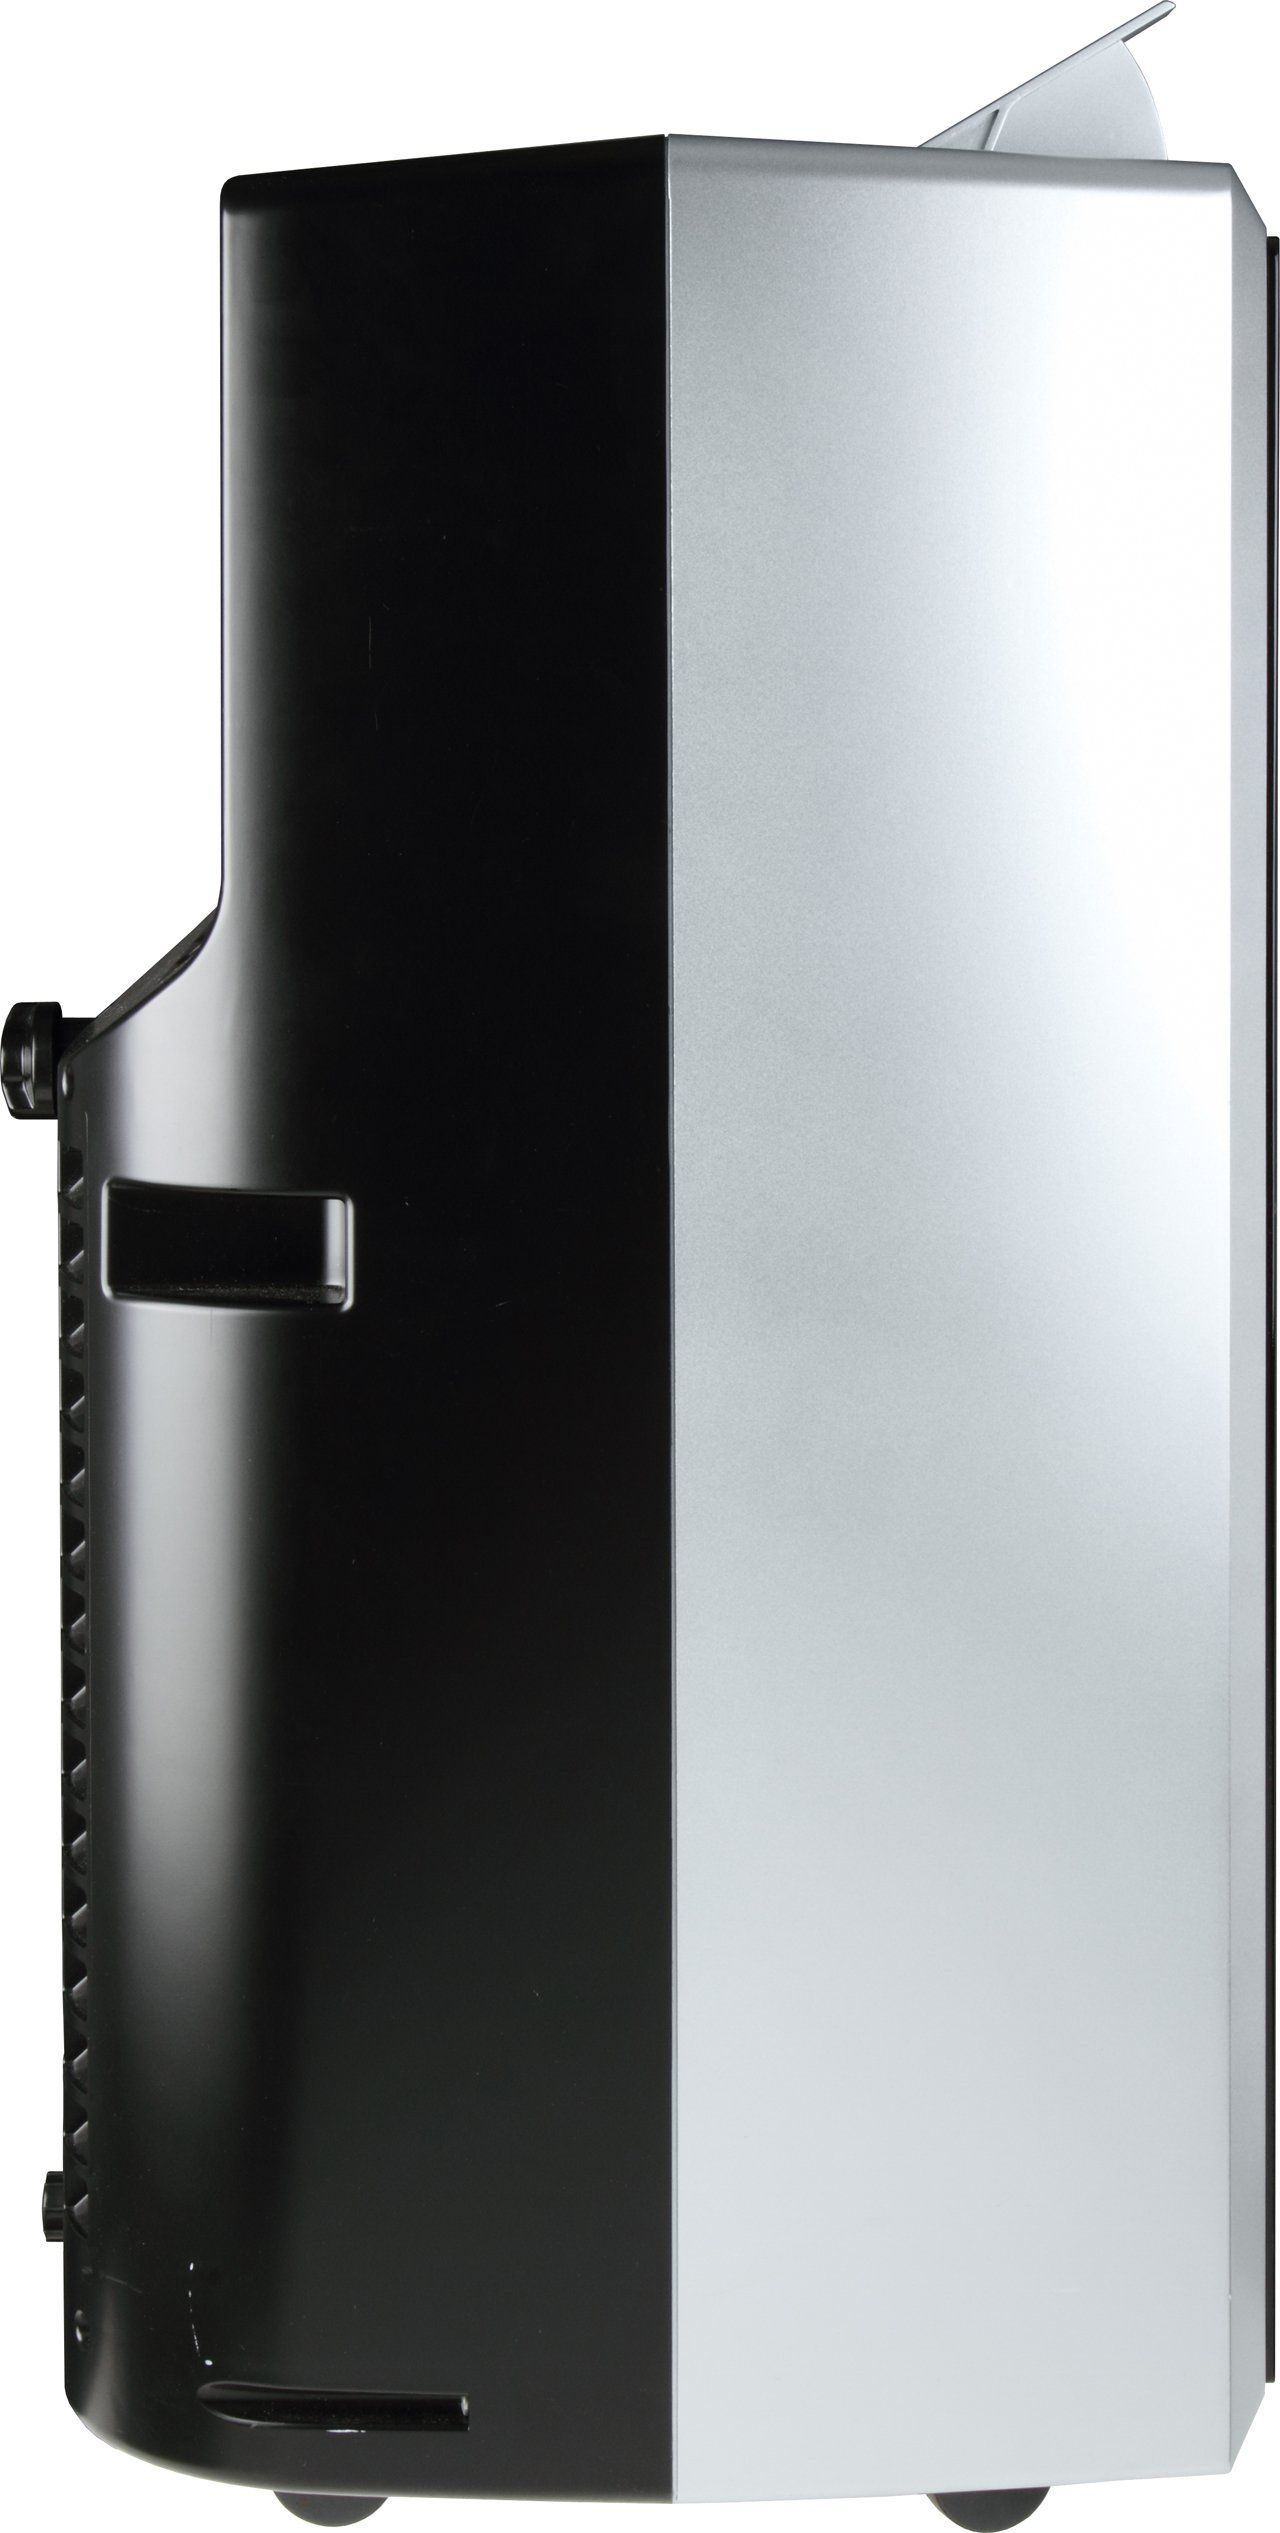 Honeywell MN12CES Portable Air Conditioner with